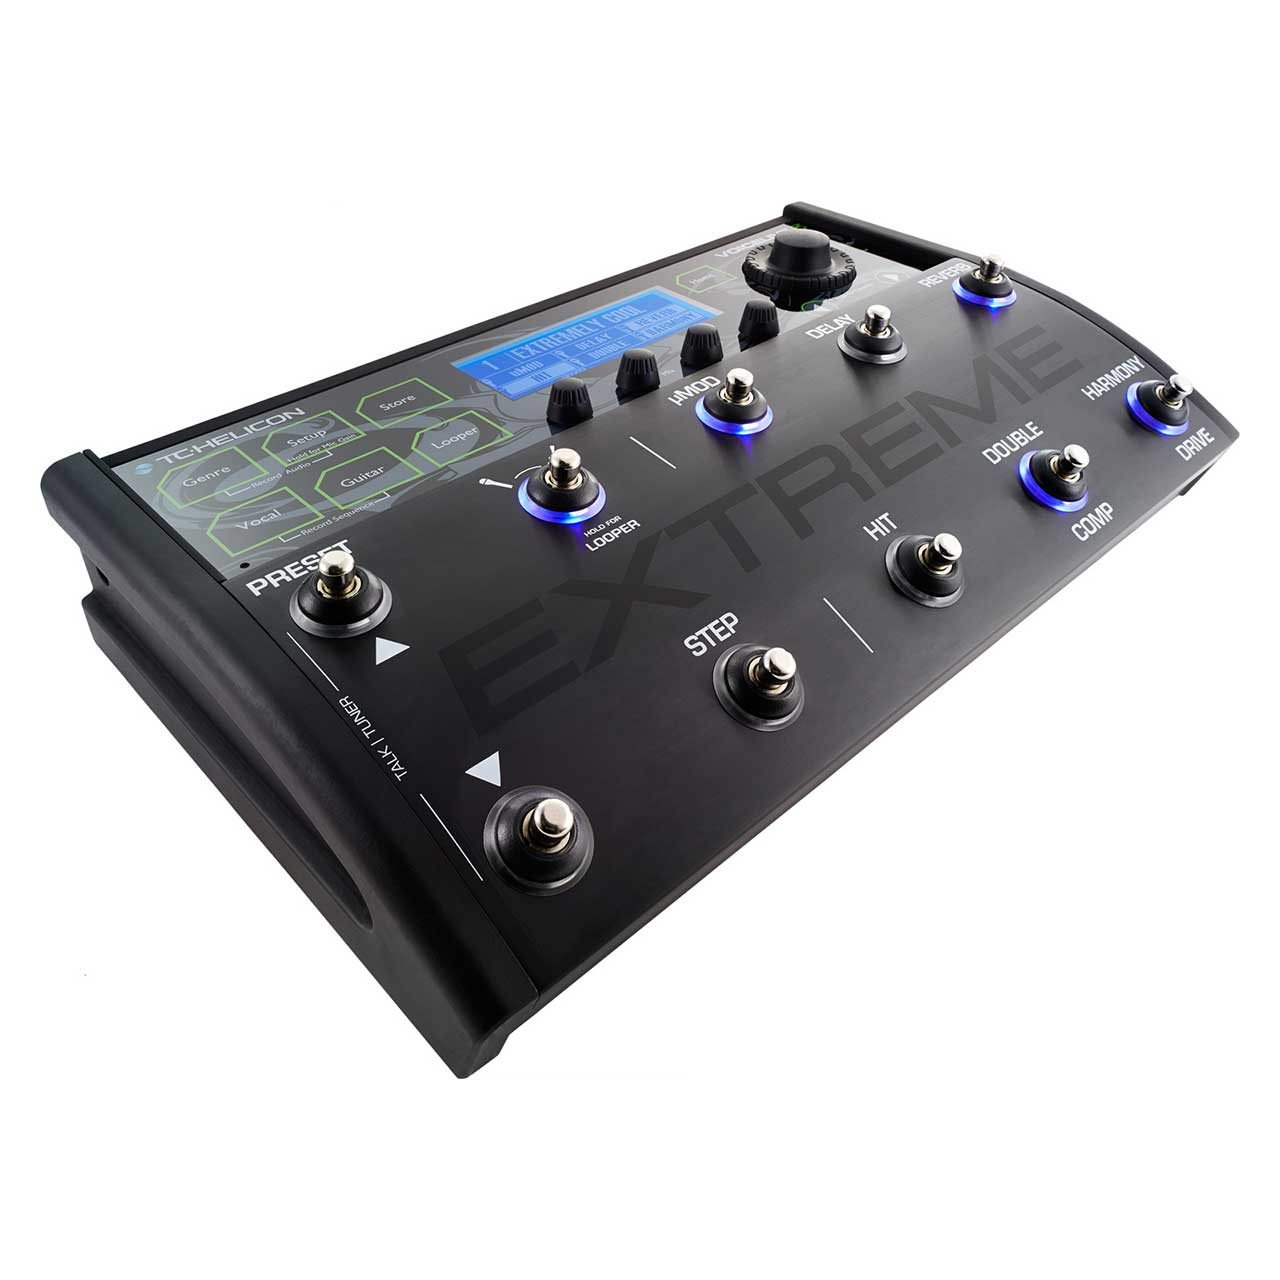 tc helicon voicelive 3 extreme vocal effects processor sounds easy. Black Bedroom Furniture Sets. Home Design Ideas